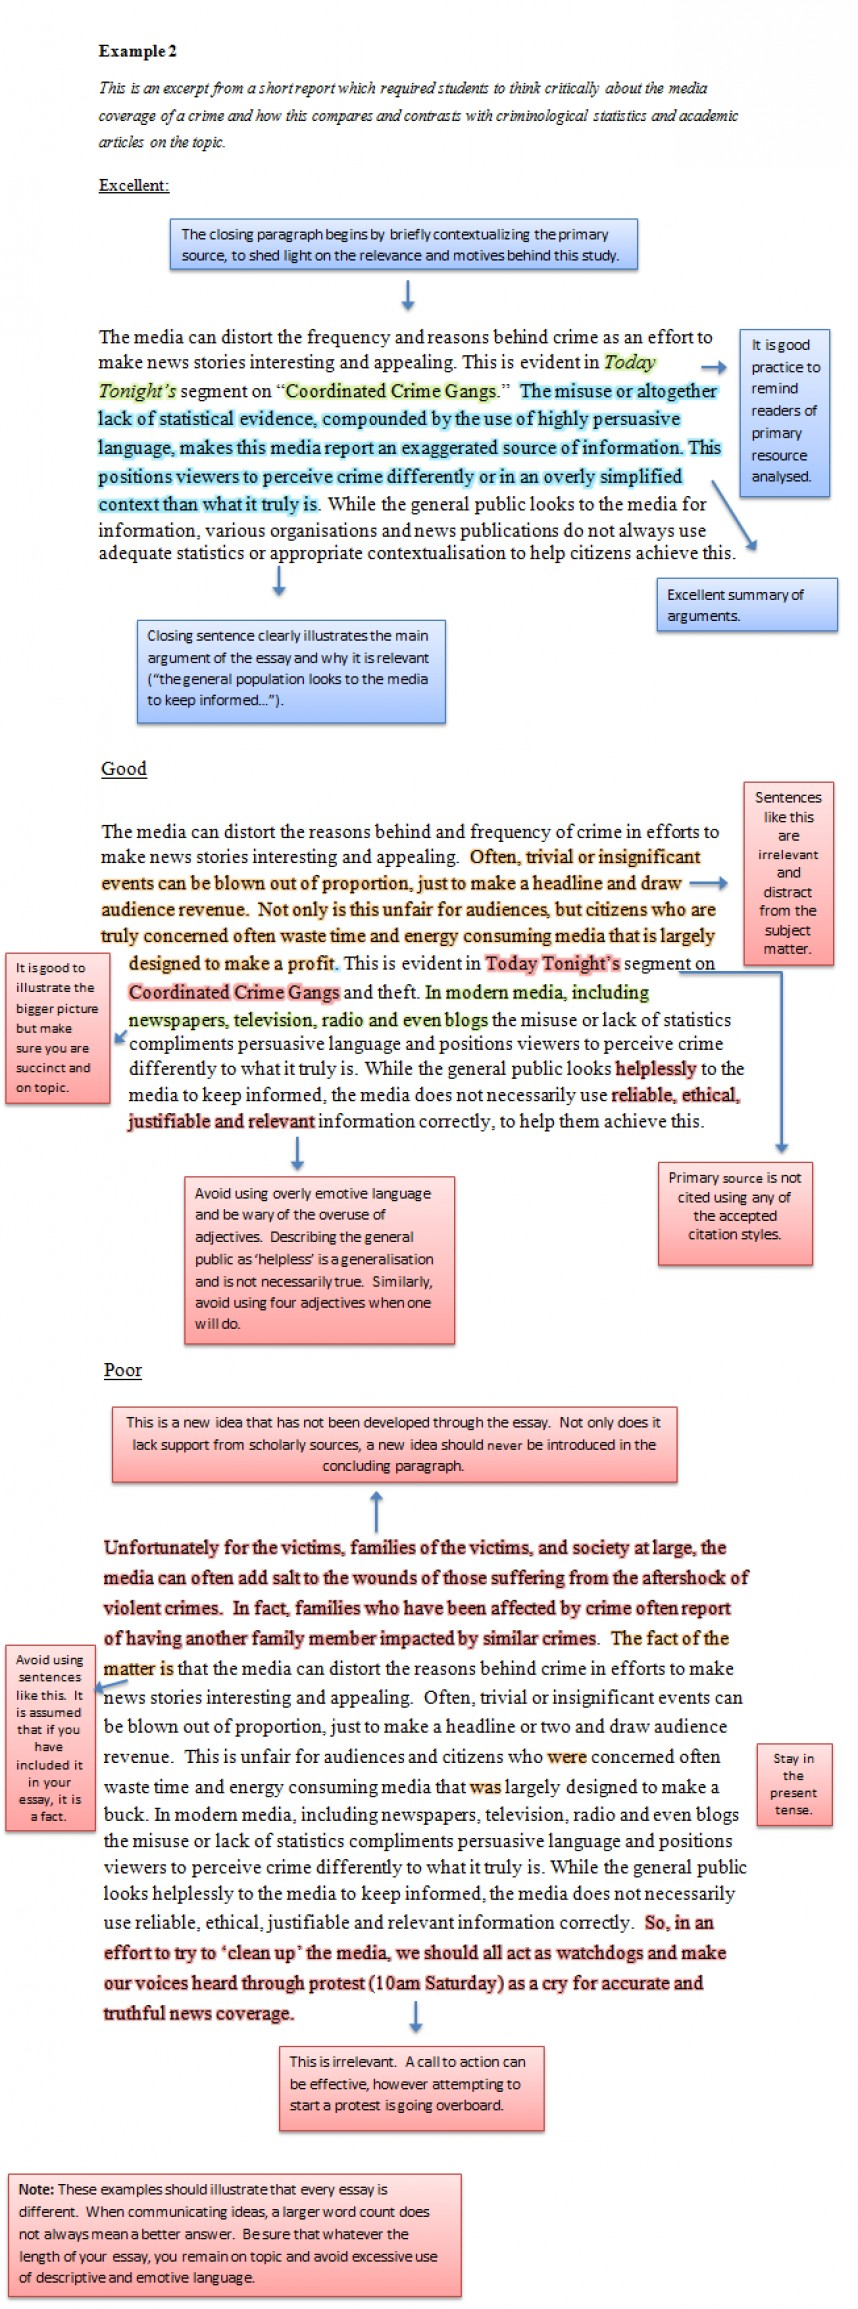 027 Conclusion Ideas For Research Paper Marvelous A